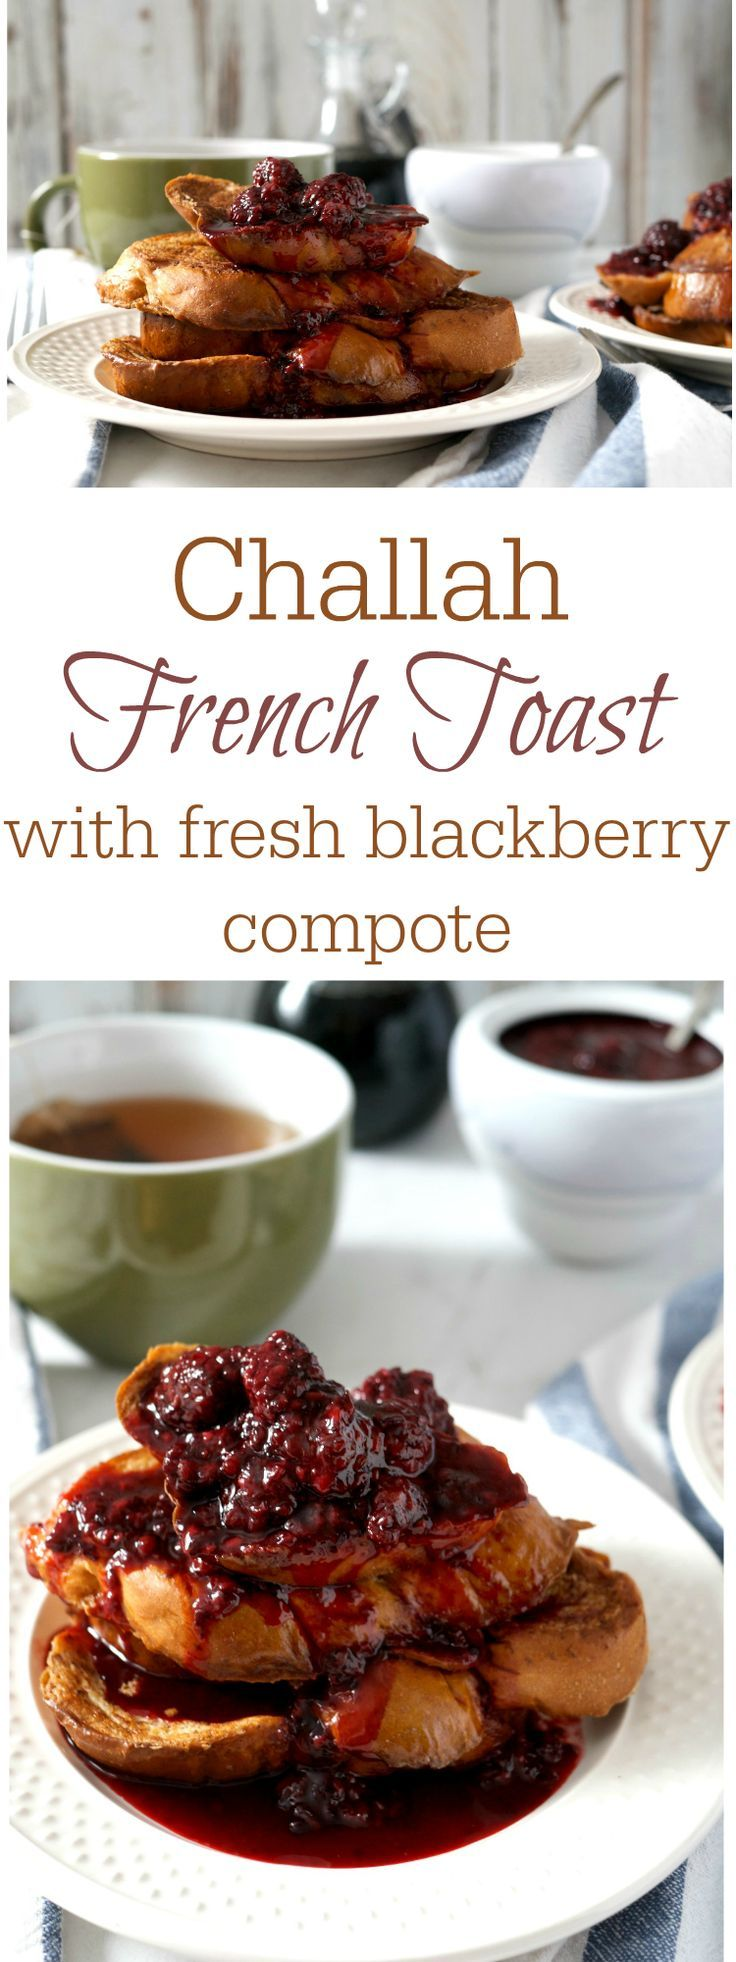 Challah French Toast With Blackberrypote